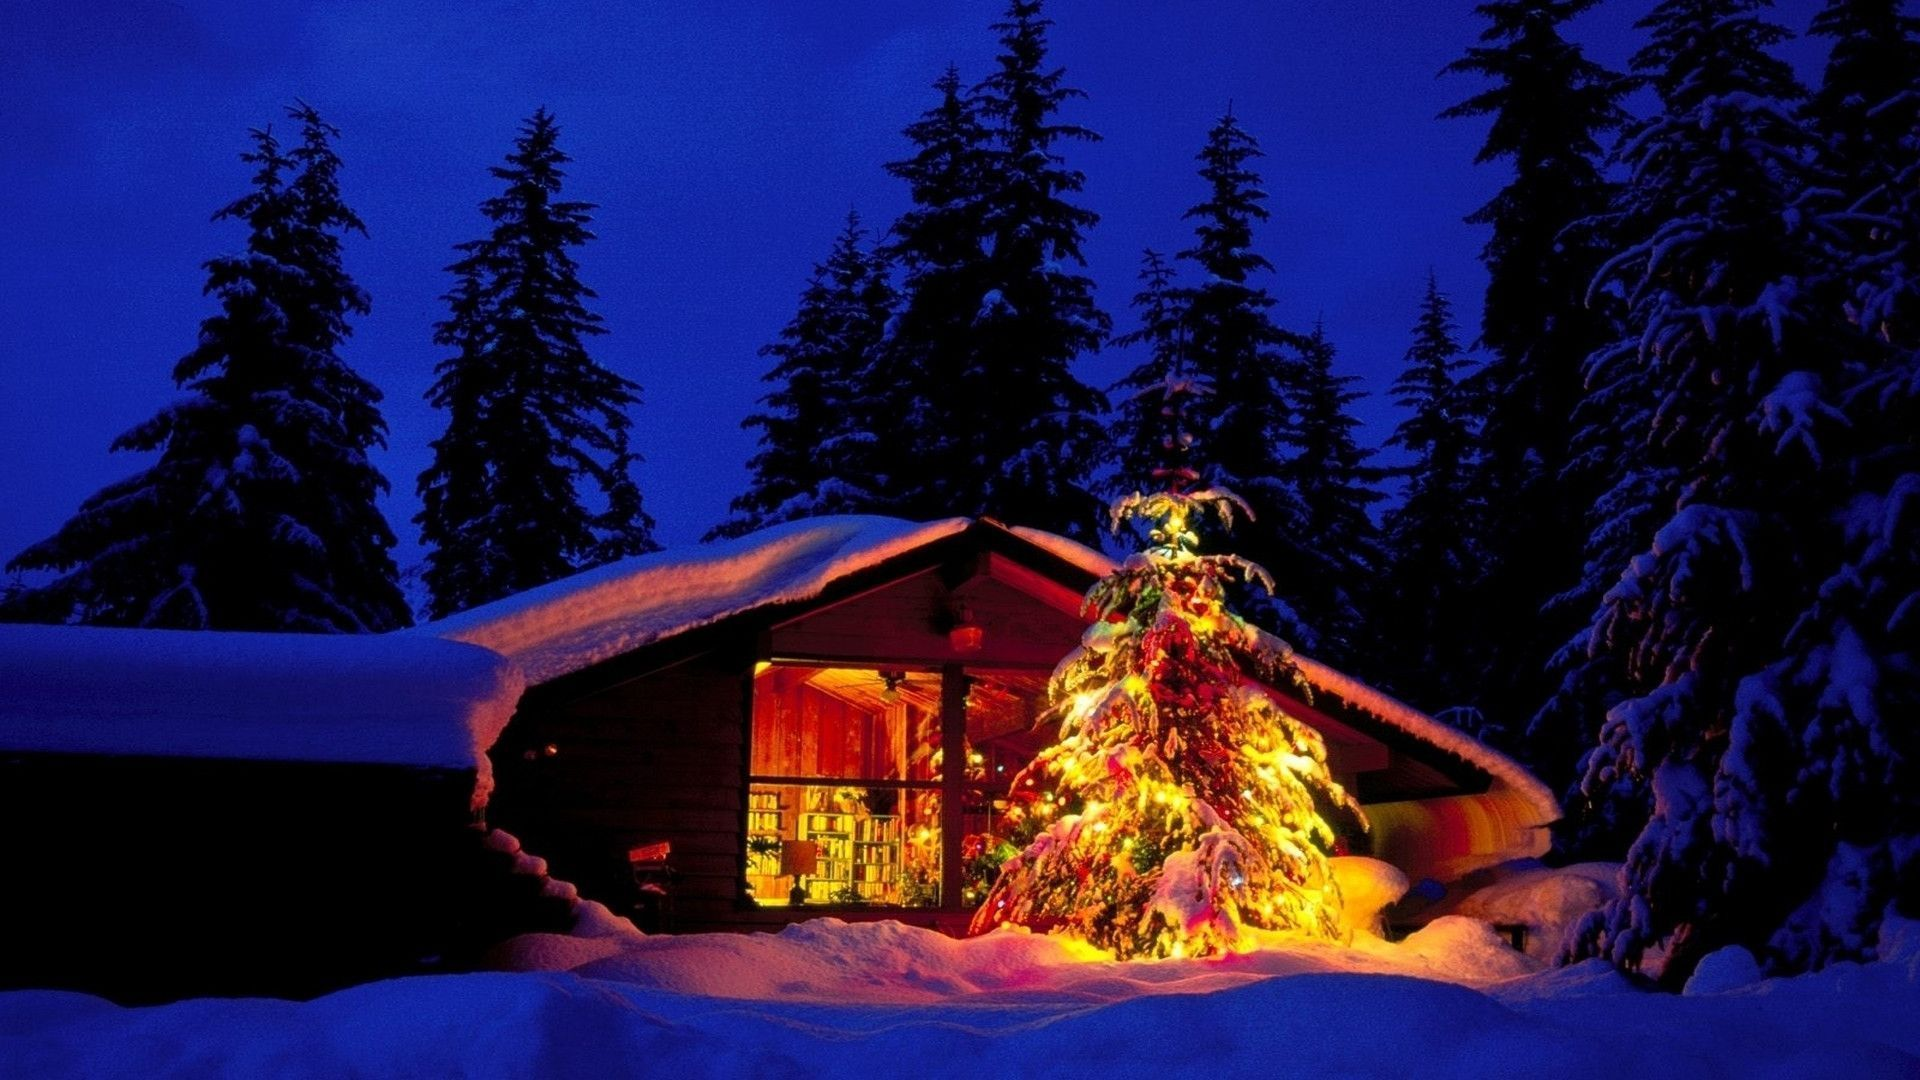 Cool Christmas And Winter Wallpapers For Your Desktop 1920x1080 56